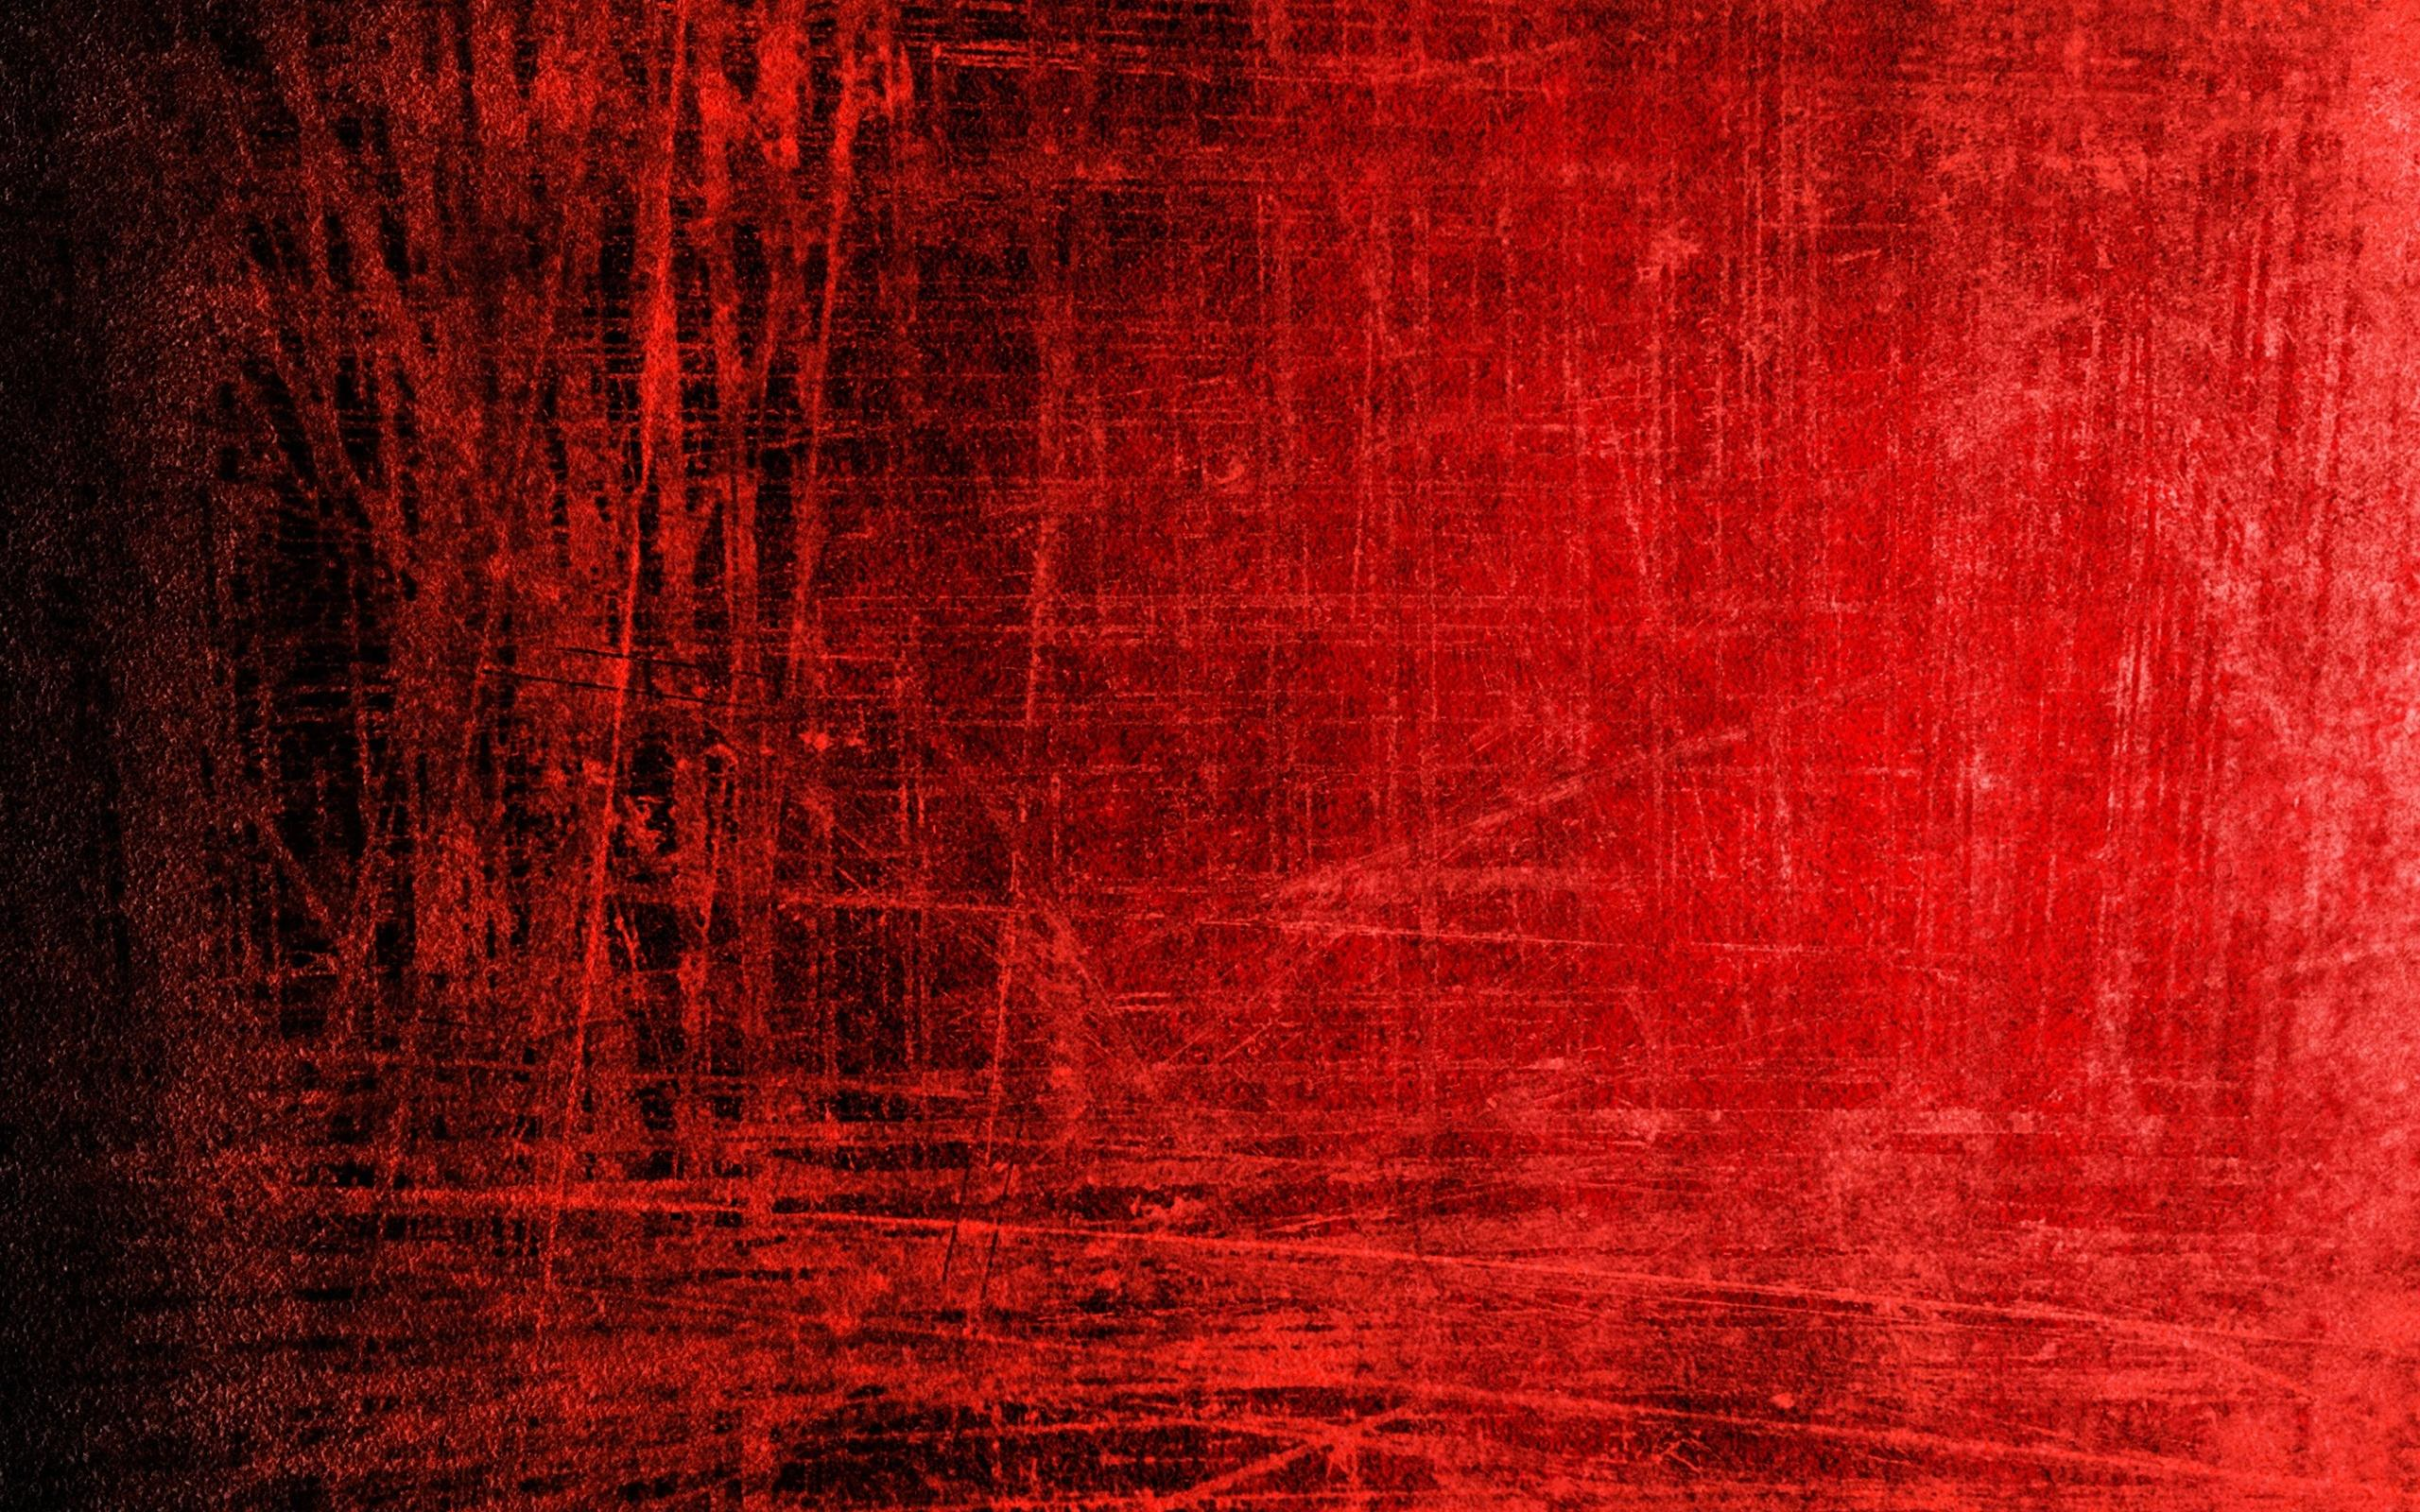 Red Background Fullscreen HD